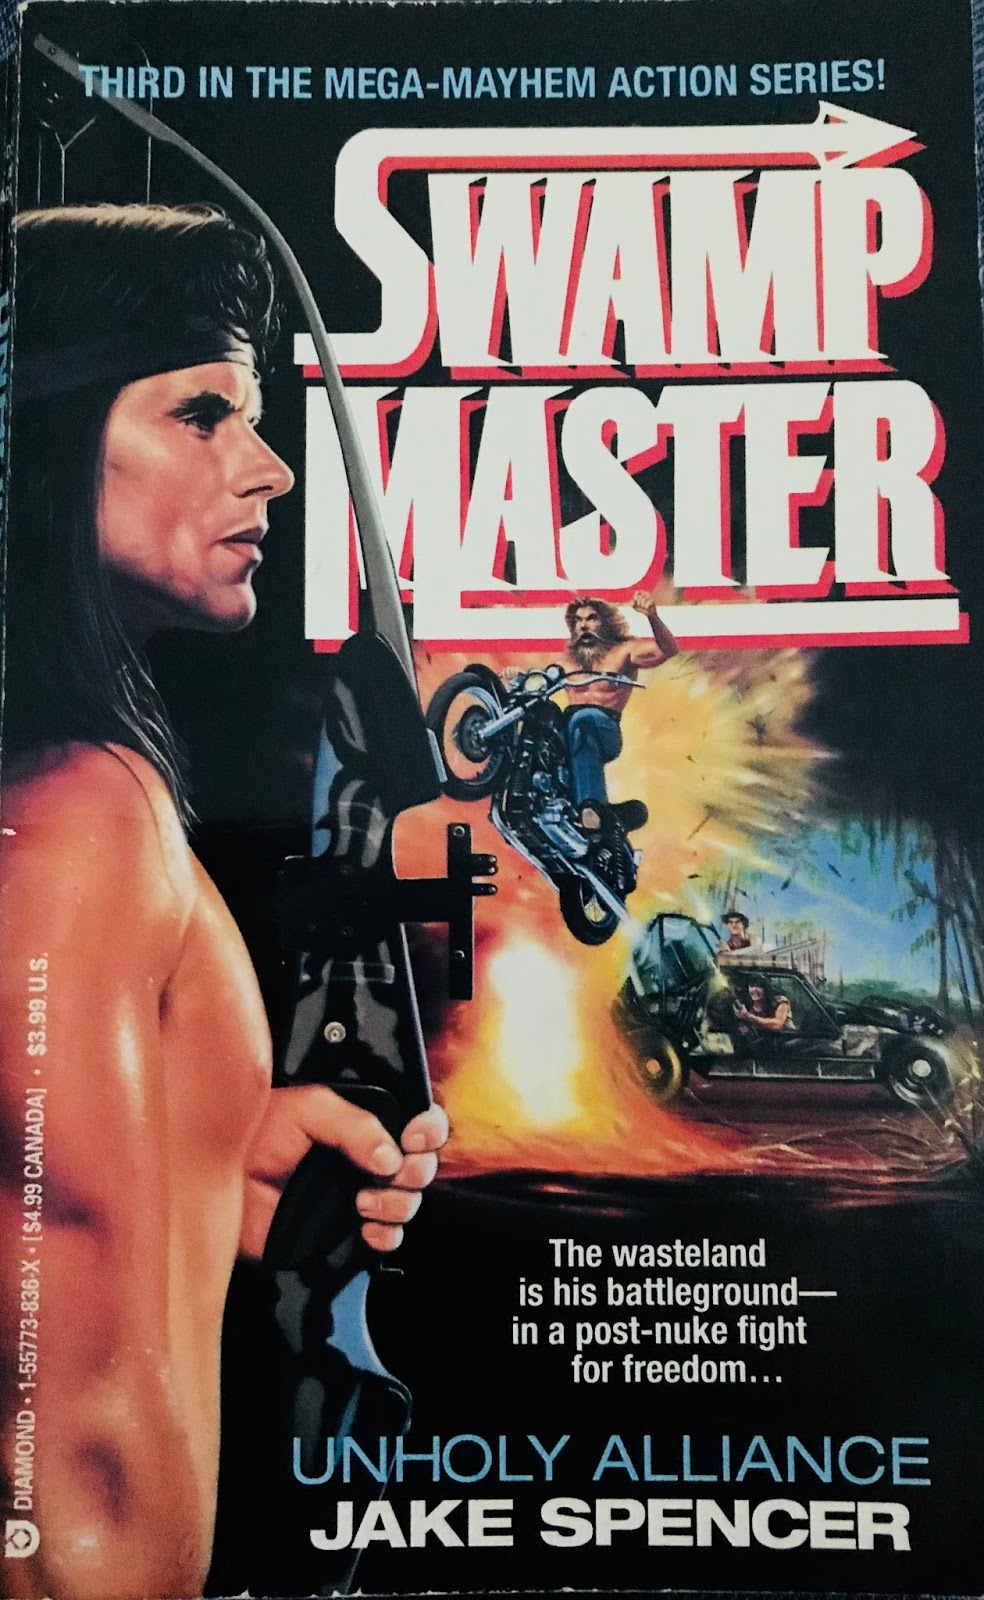 If Paperback Warrior celebrated a Hall of Shame, then two of the three  books in this 'Swampmaster' series would absolutely be inducted.